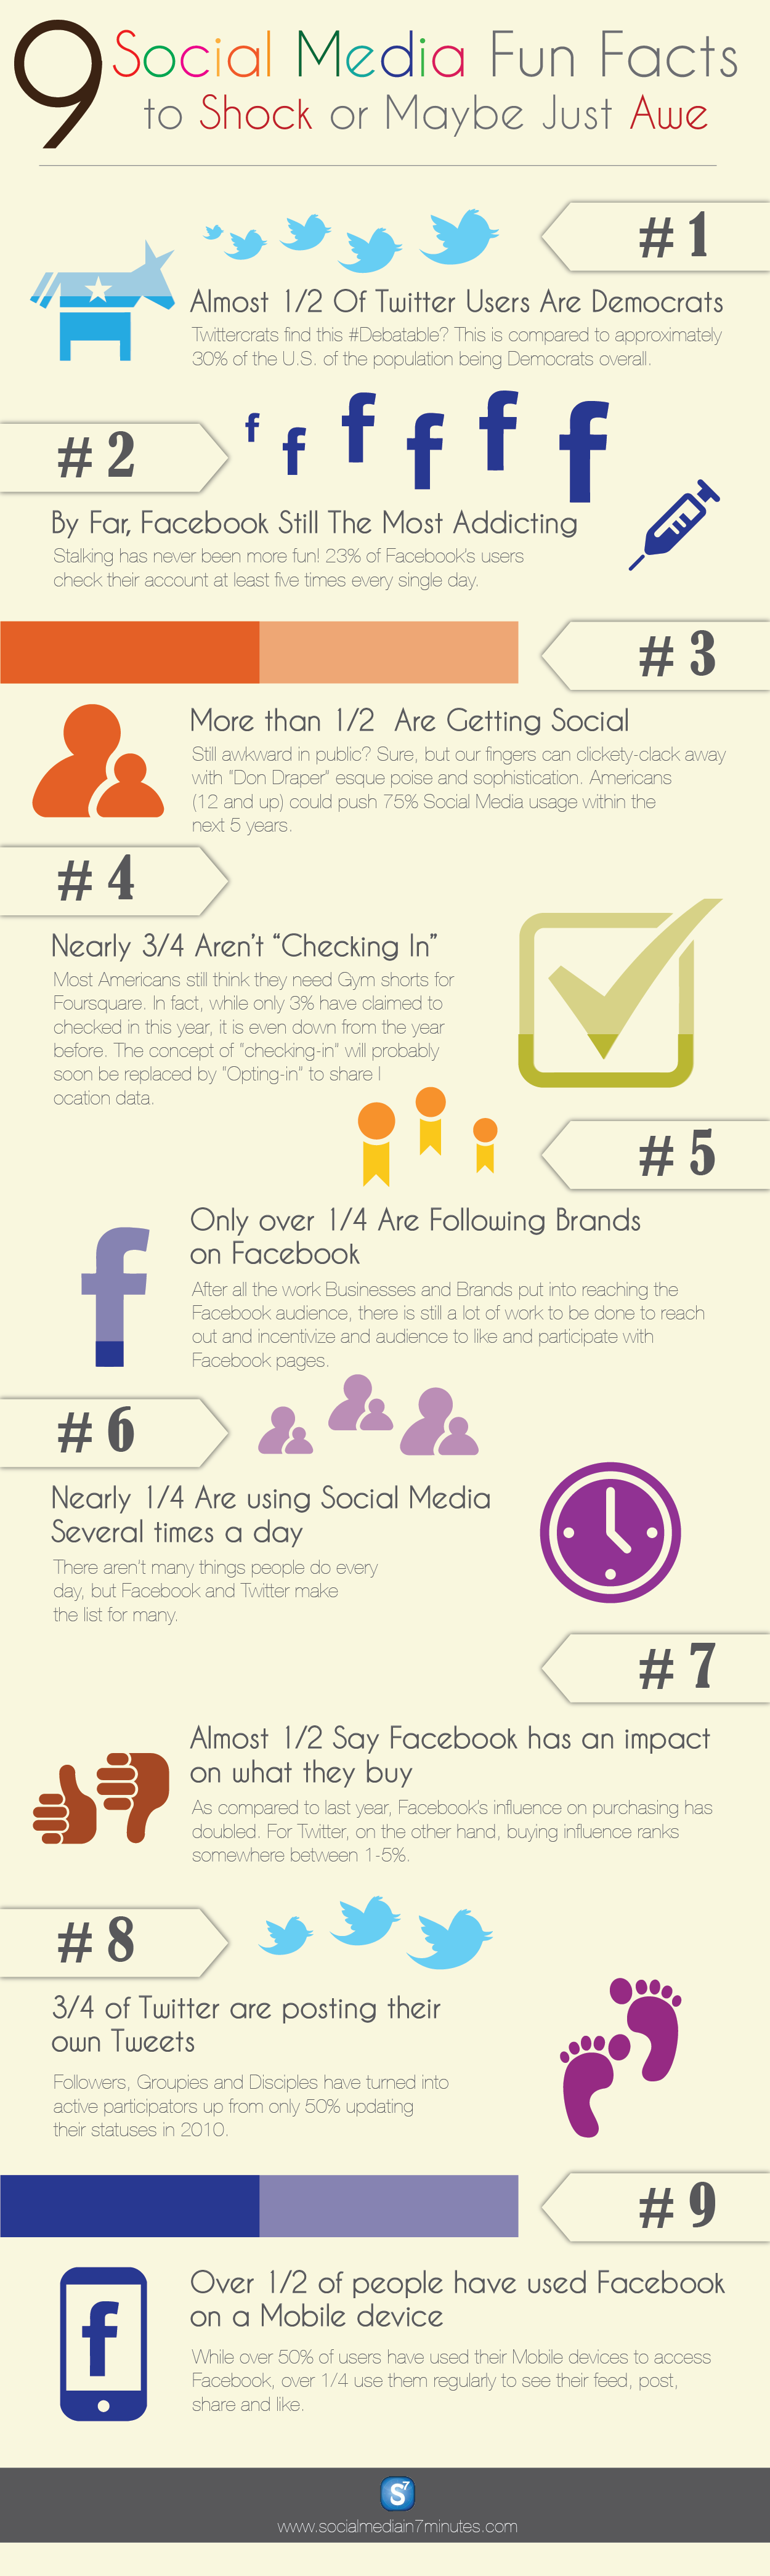 9 Interesting Facts about Social Media